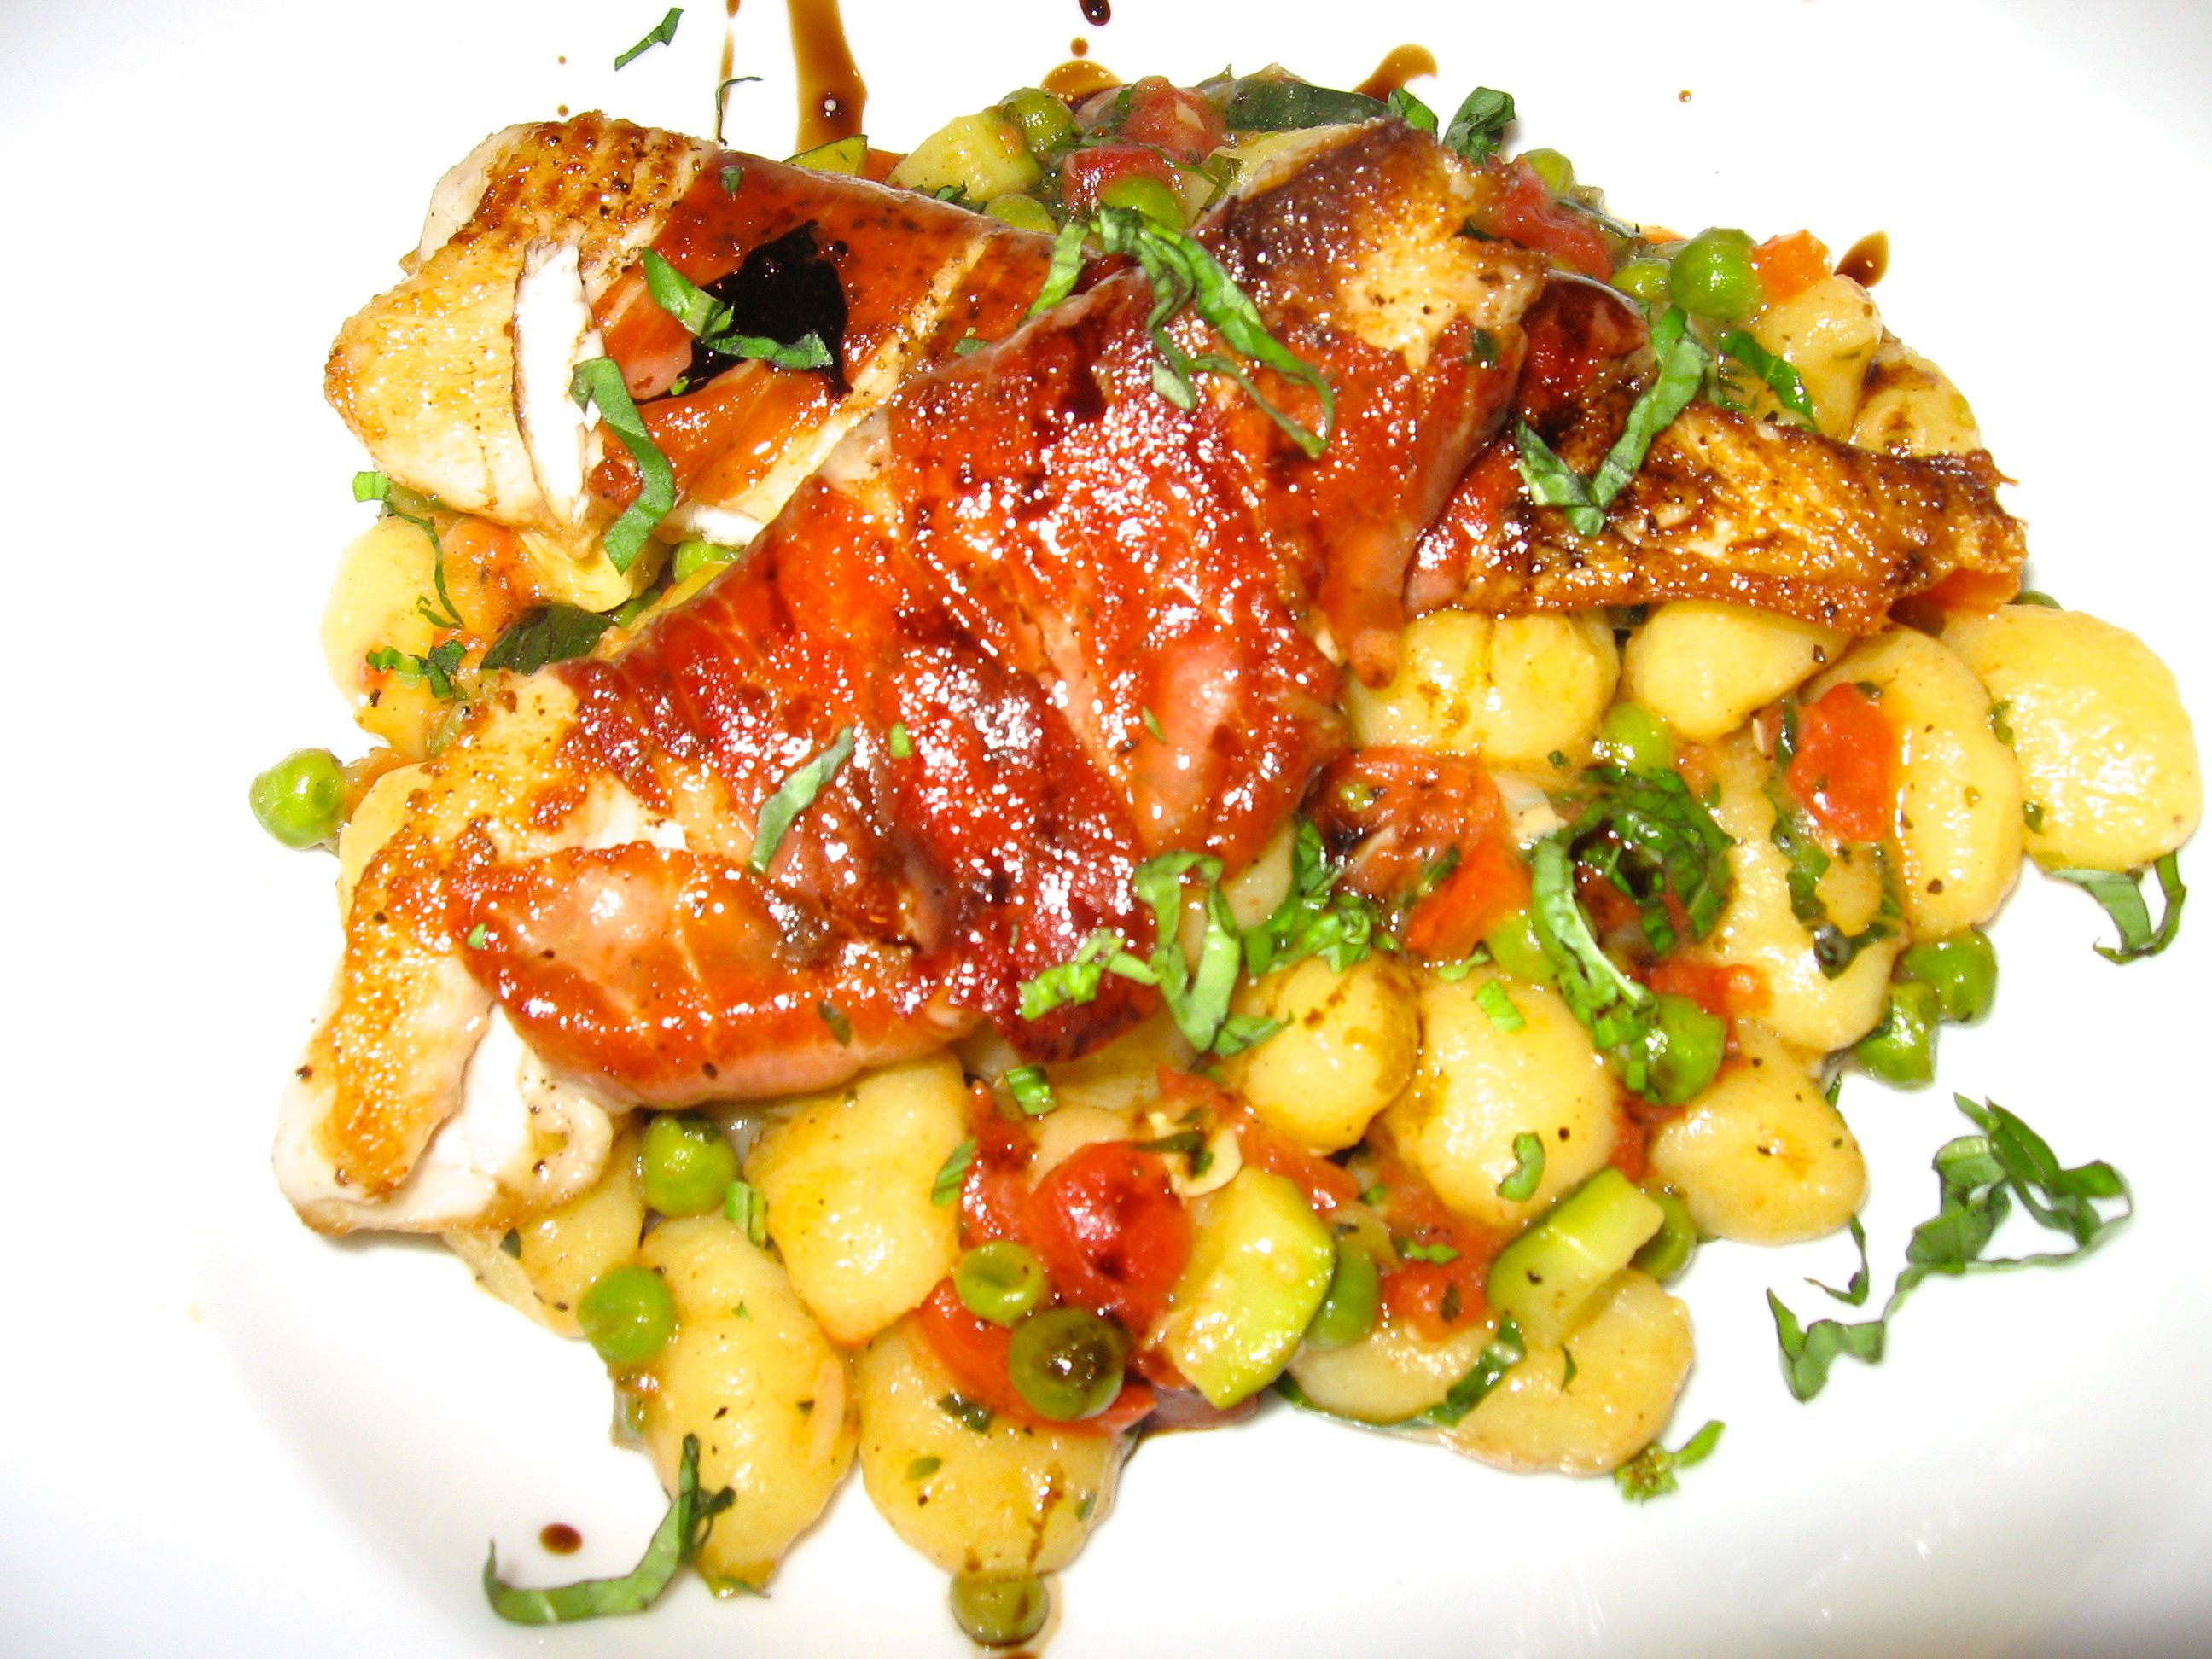 Prosciutto Wrapped Tilapia served over Gnocchi with Spring Vegetables